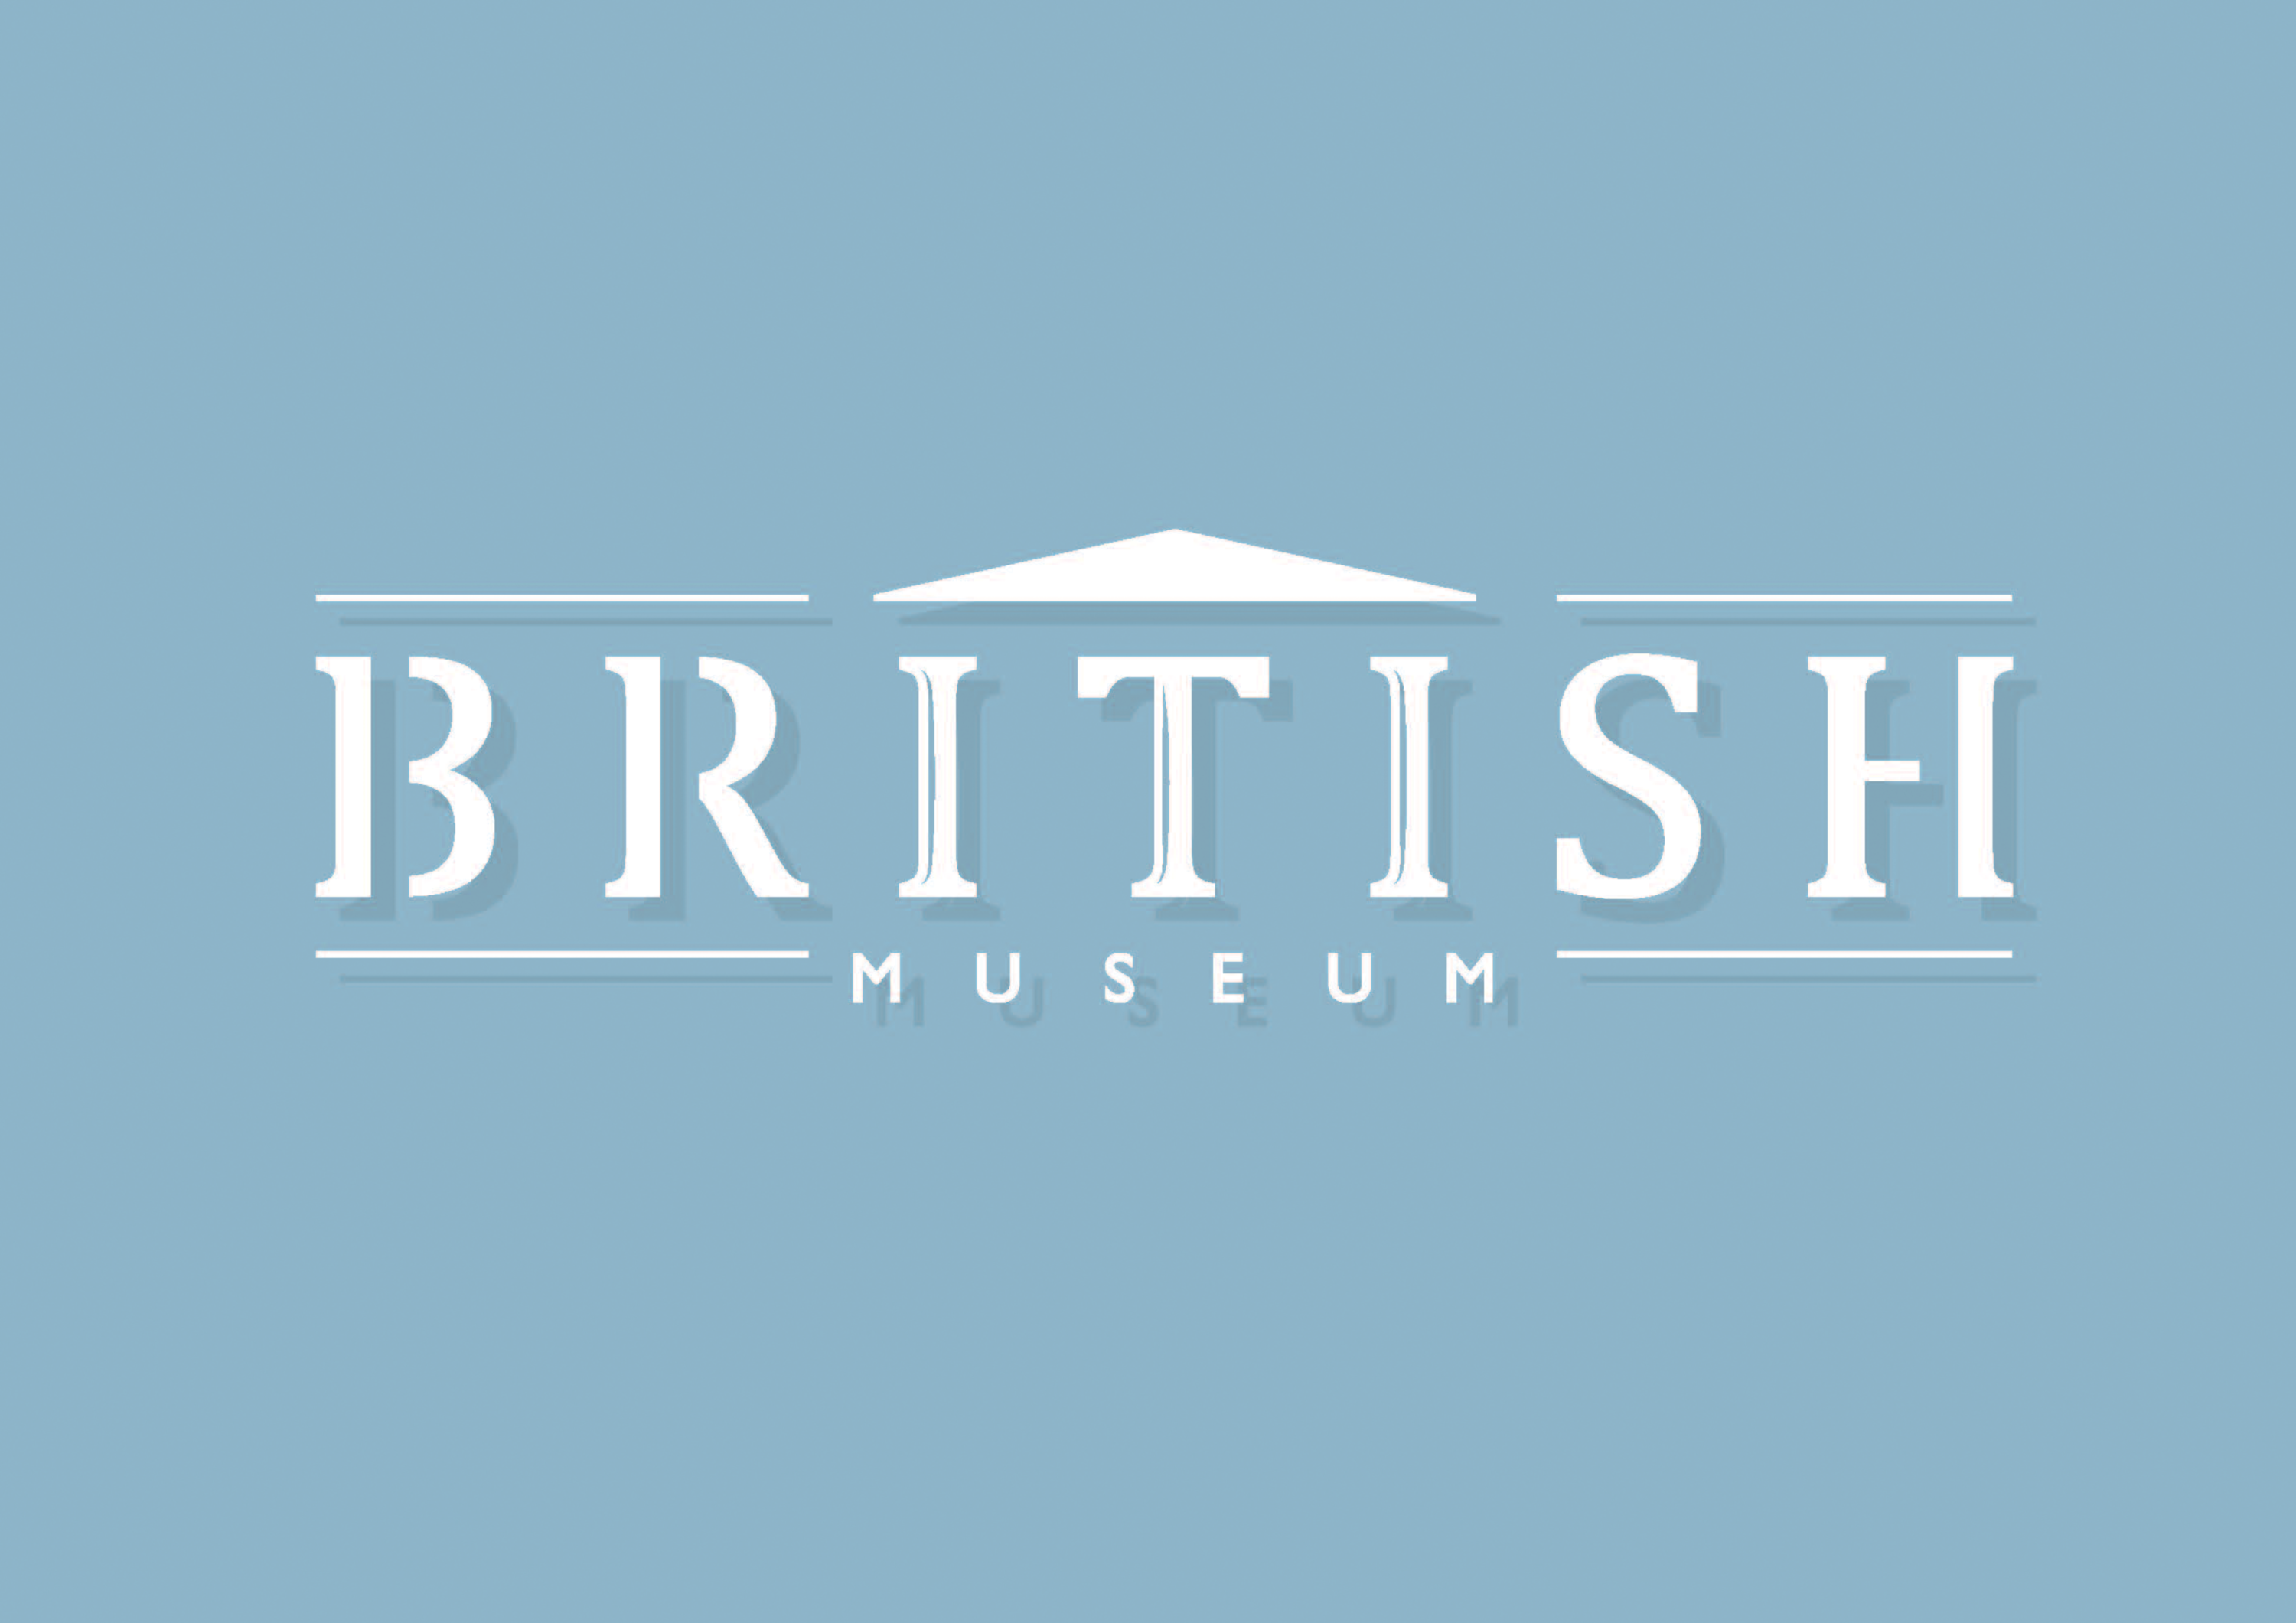 British Museum Concept Re-Brand | The Dots